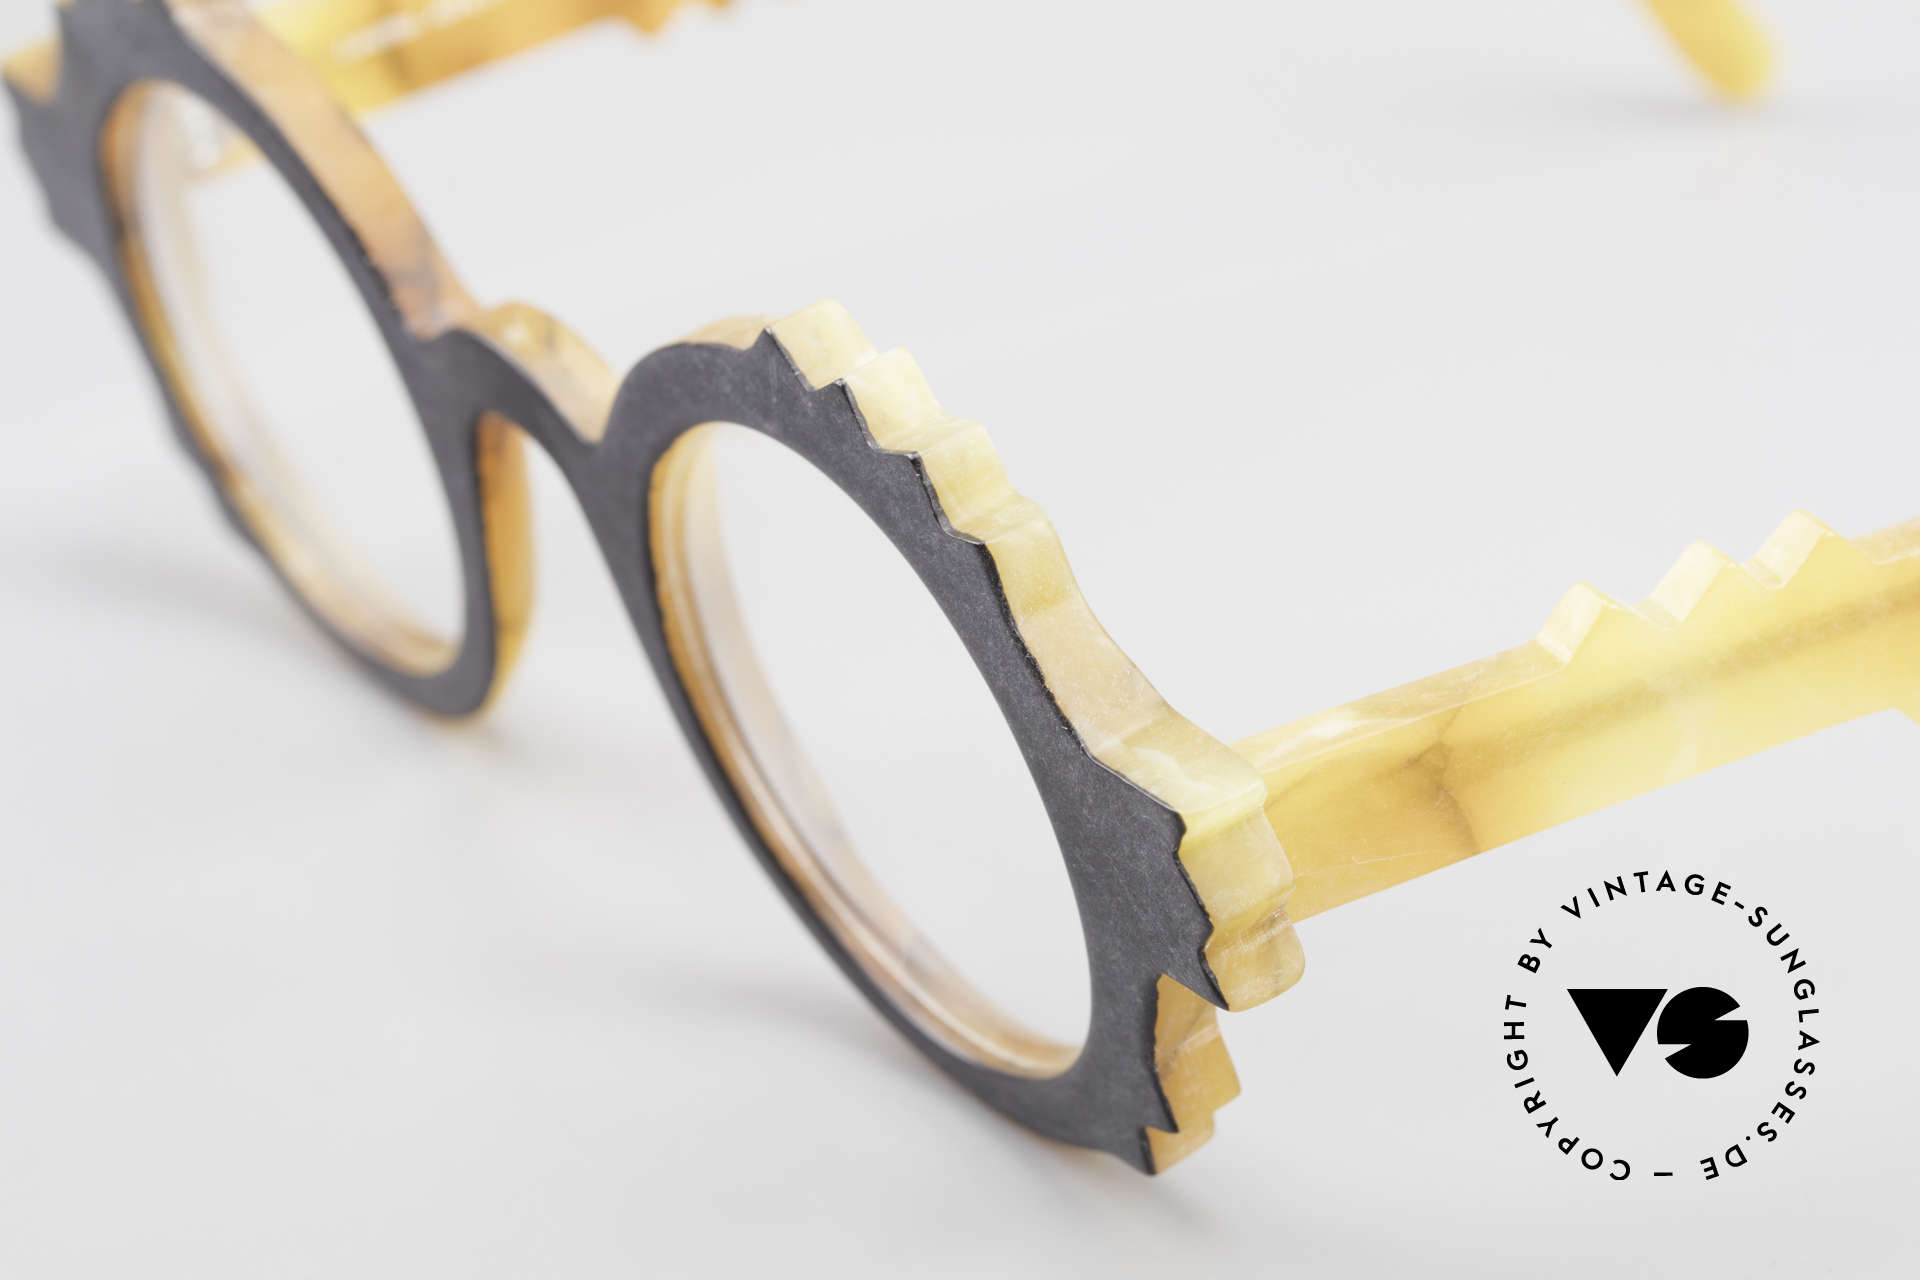 Anne Et Valentin Herrison Elaborate 80's Vintage Glasses, this old model comes from the beginning of A&V, Made for Women